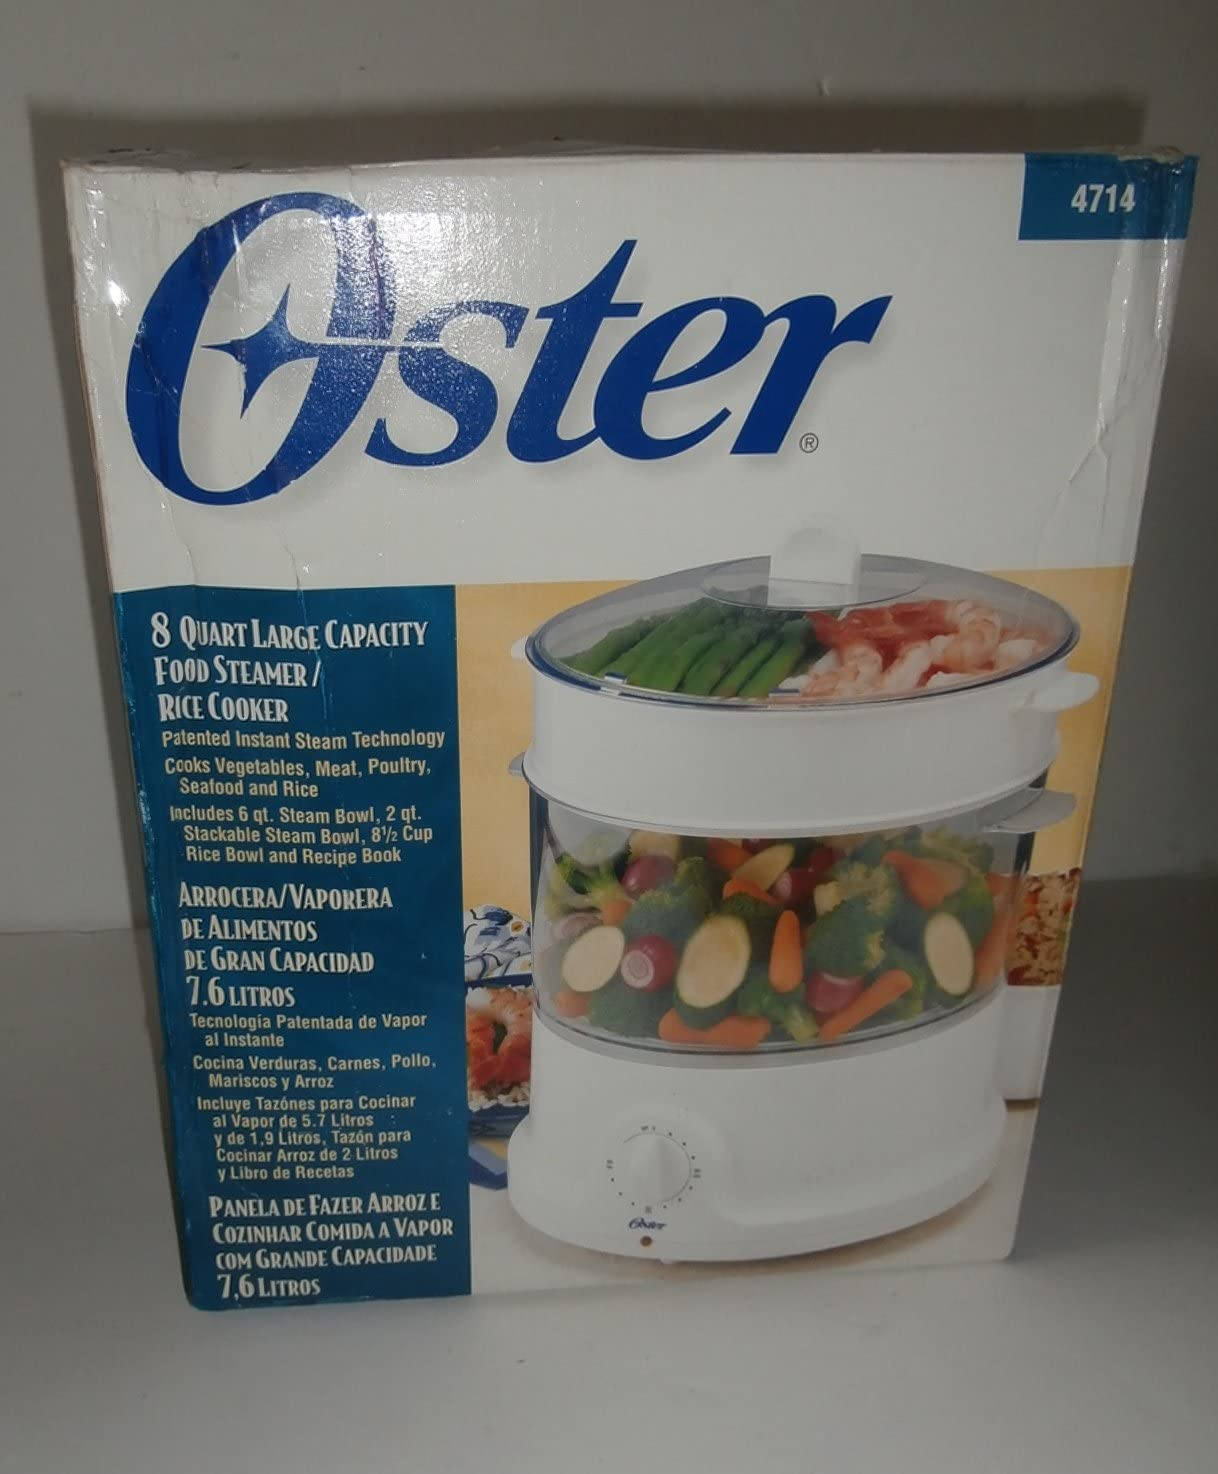 Oster 4714 Large Capacity 8-Quart Food Steamer Rice Cooker - White